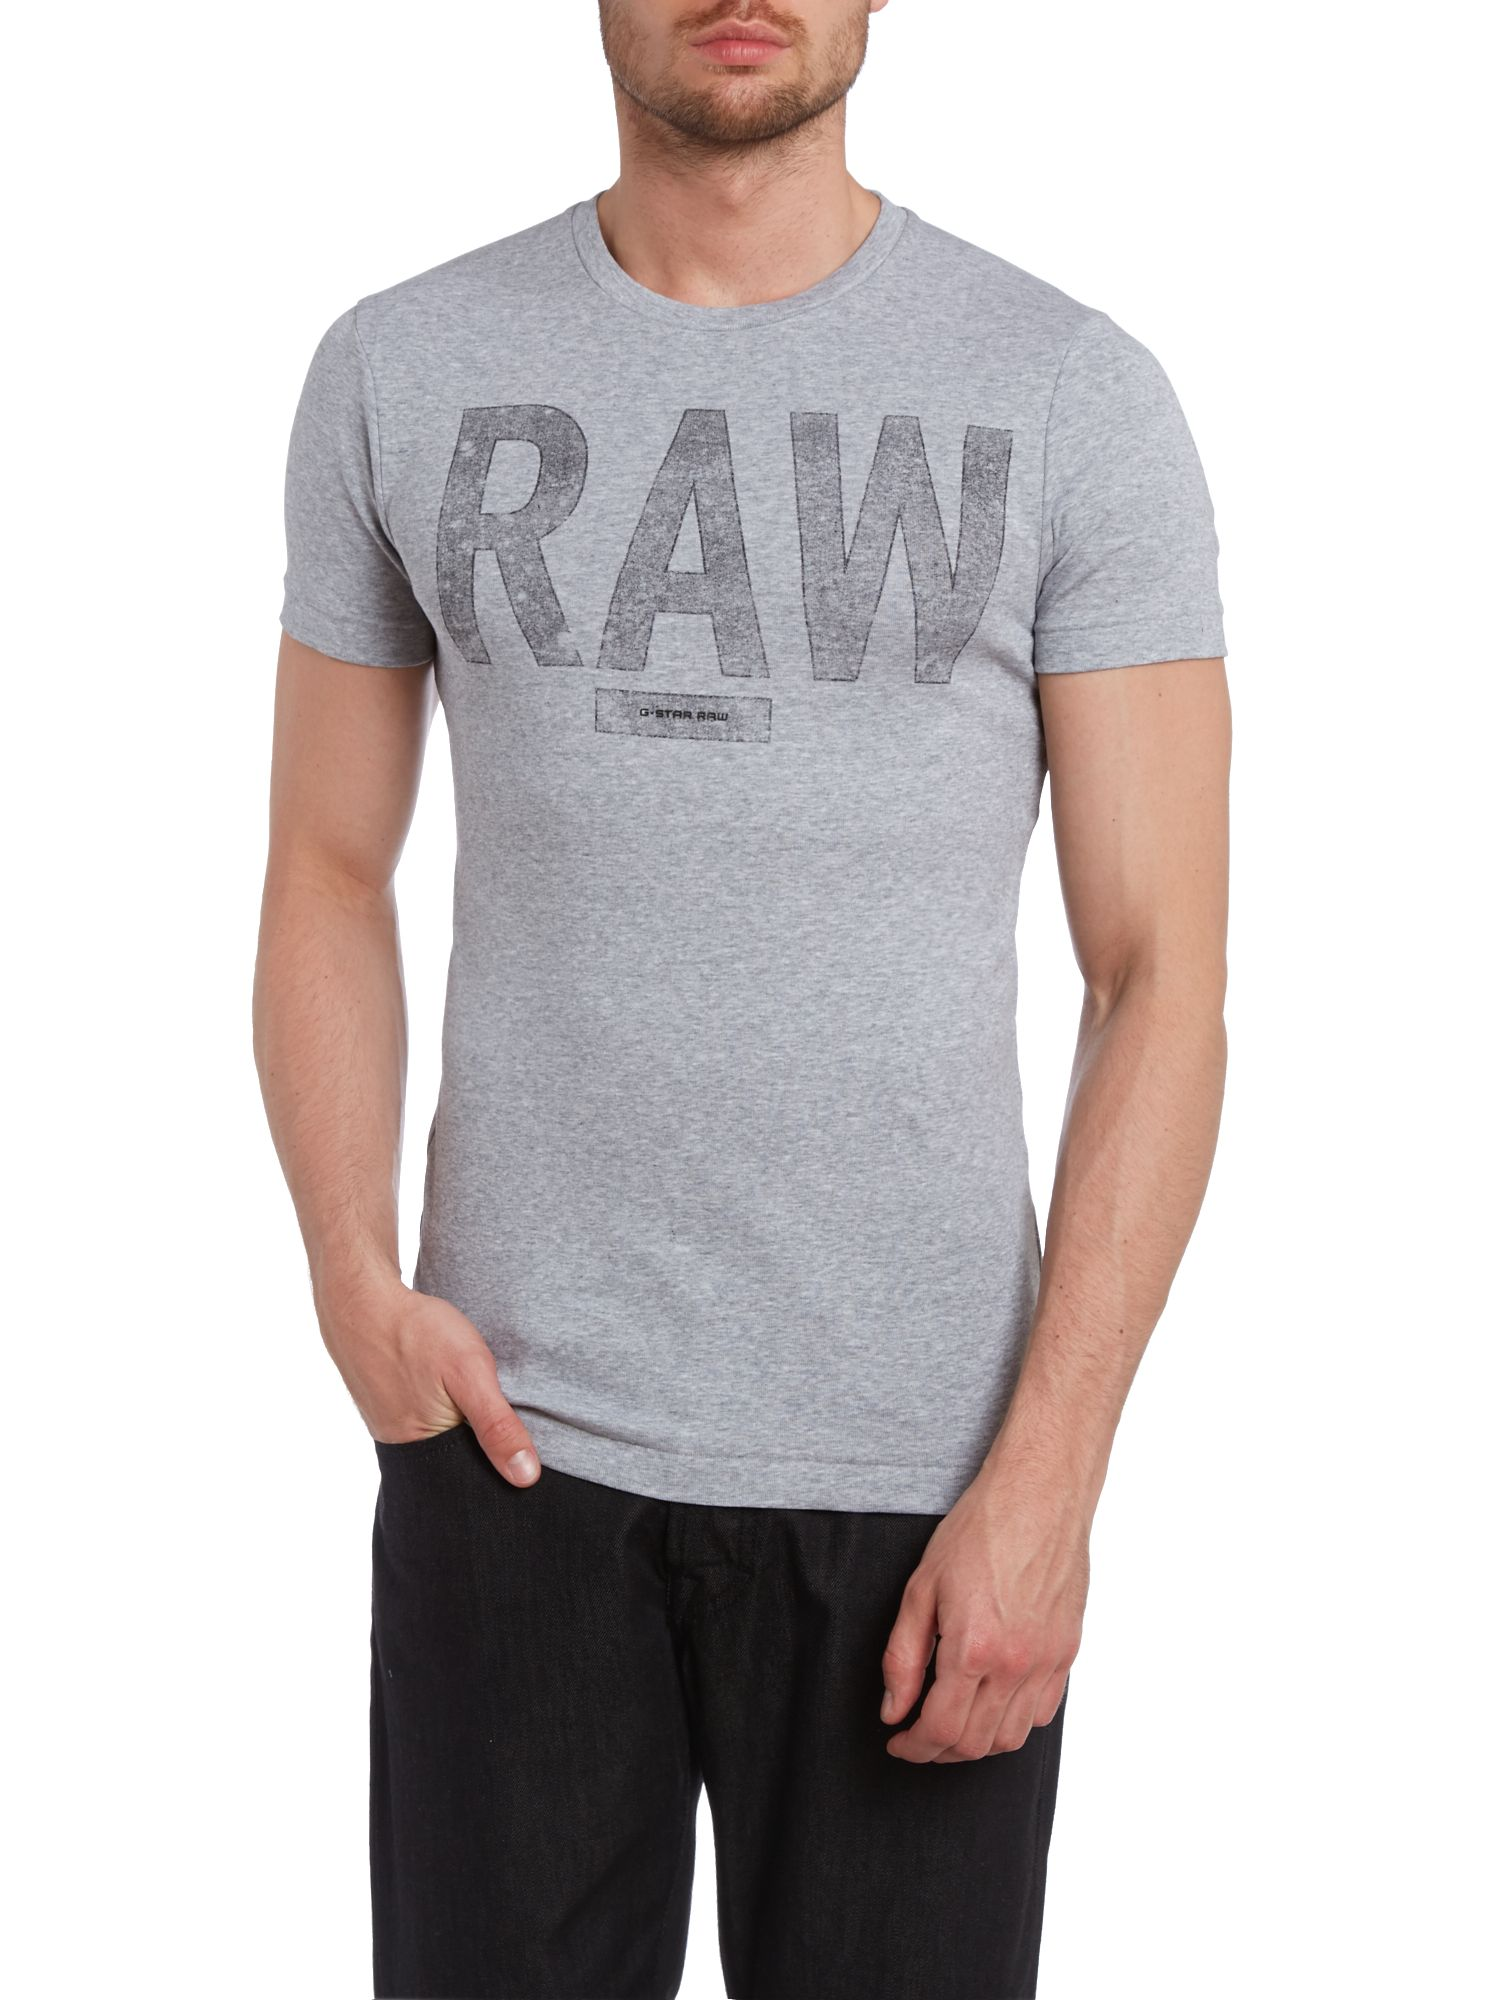 Raw marl printed t shirt